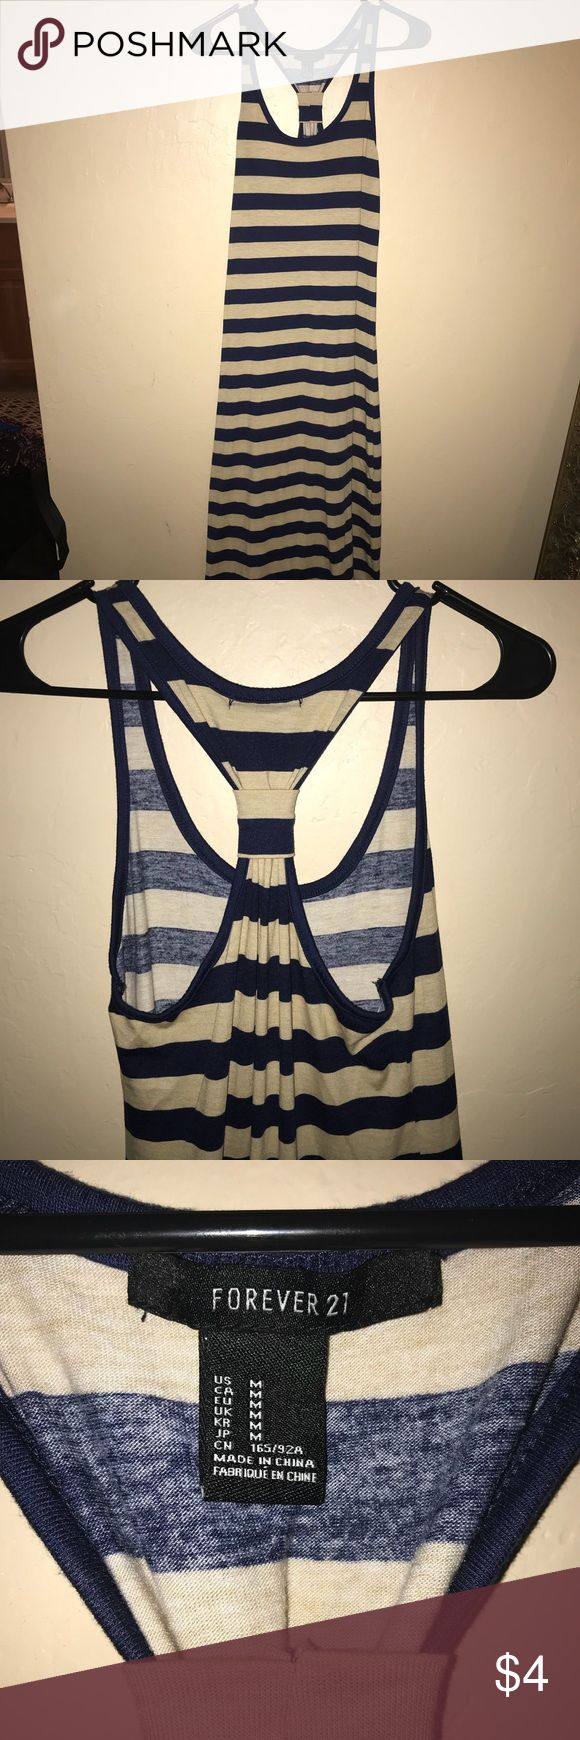 Medium stripped maxi dress forever 21 Super light and ready for summer, worn very lightly Forever 21 Dresses Maxi